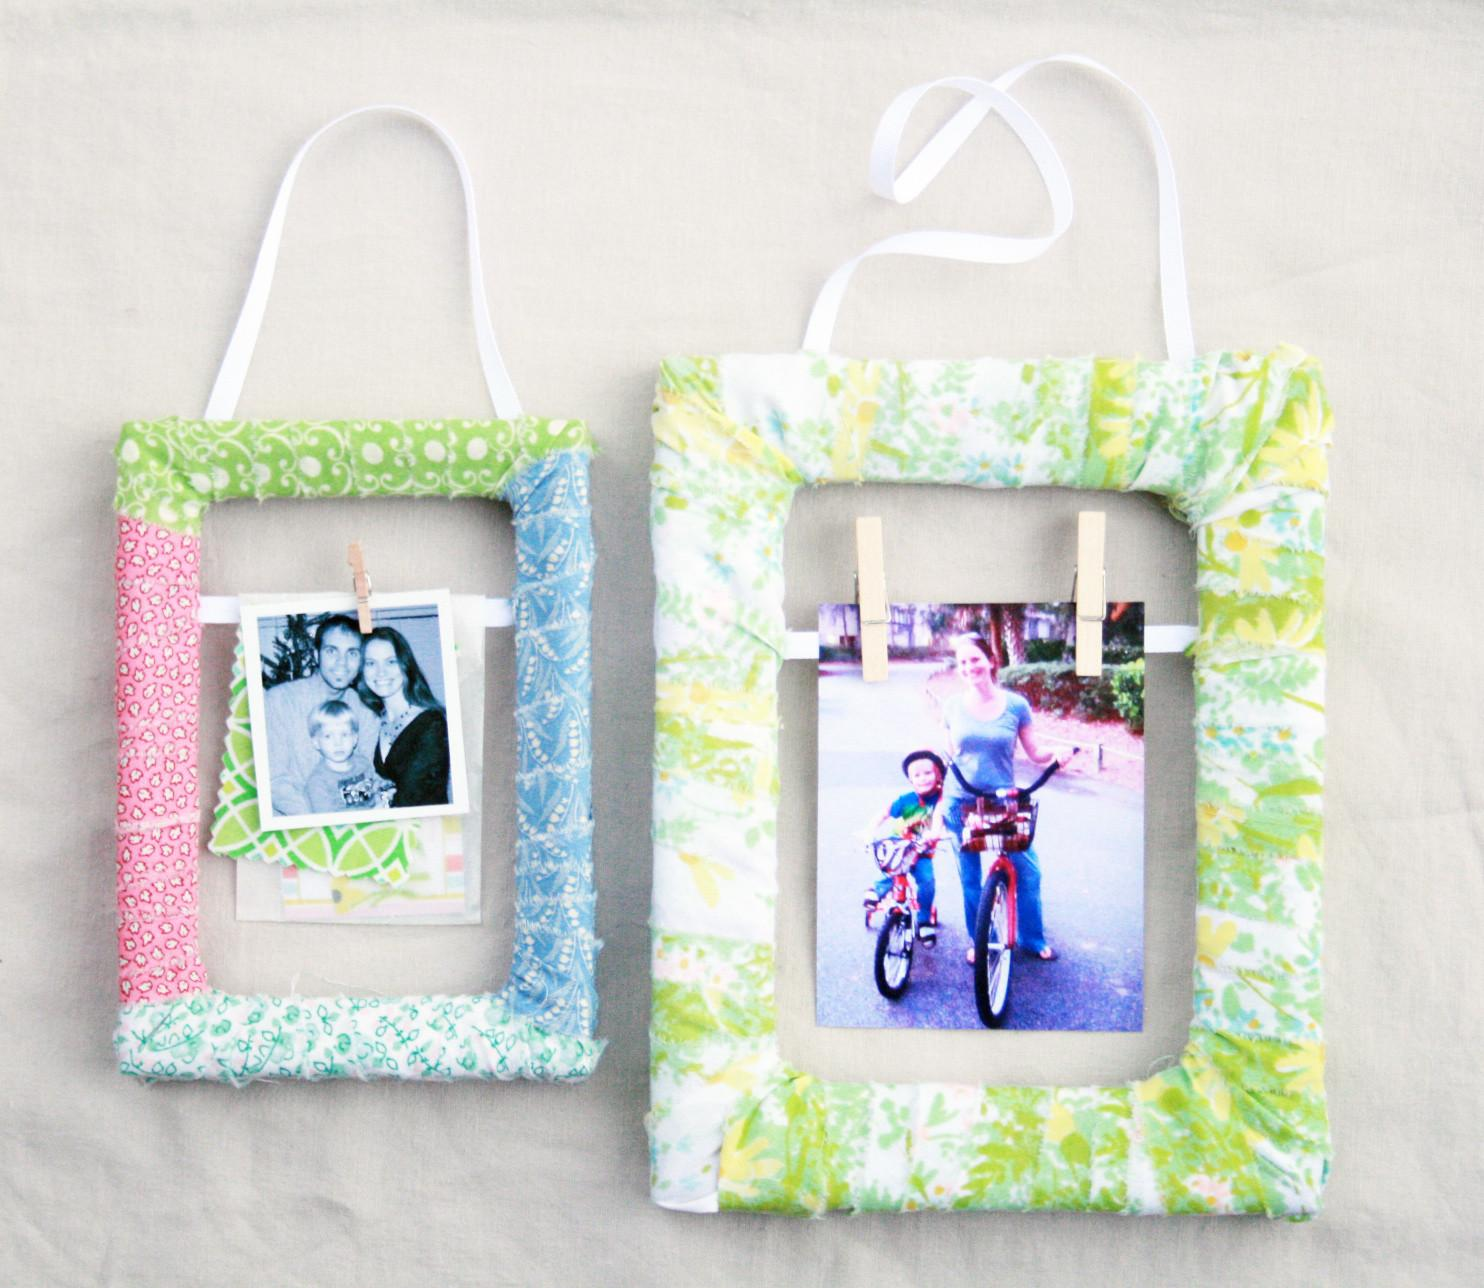 Creative Place Diy Fabric Scrap Wrapped Frame